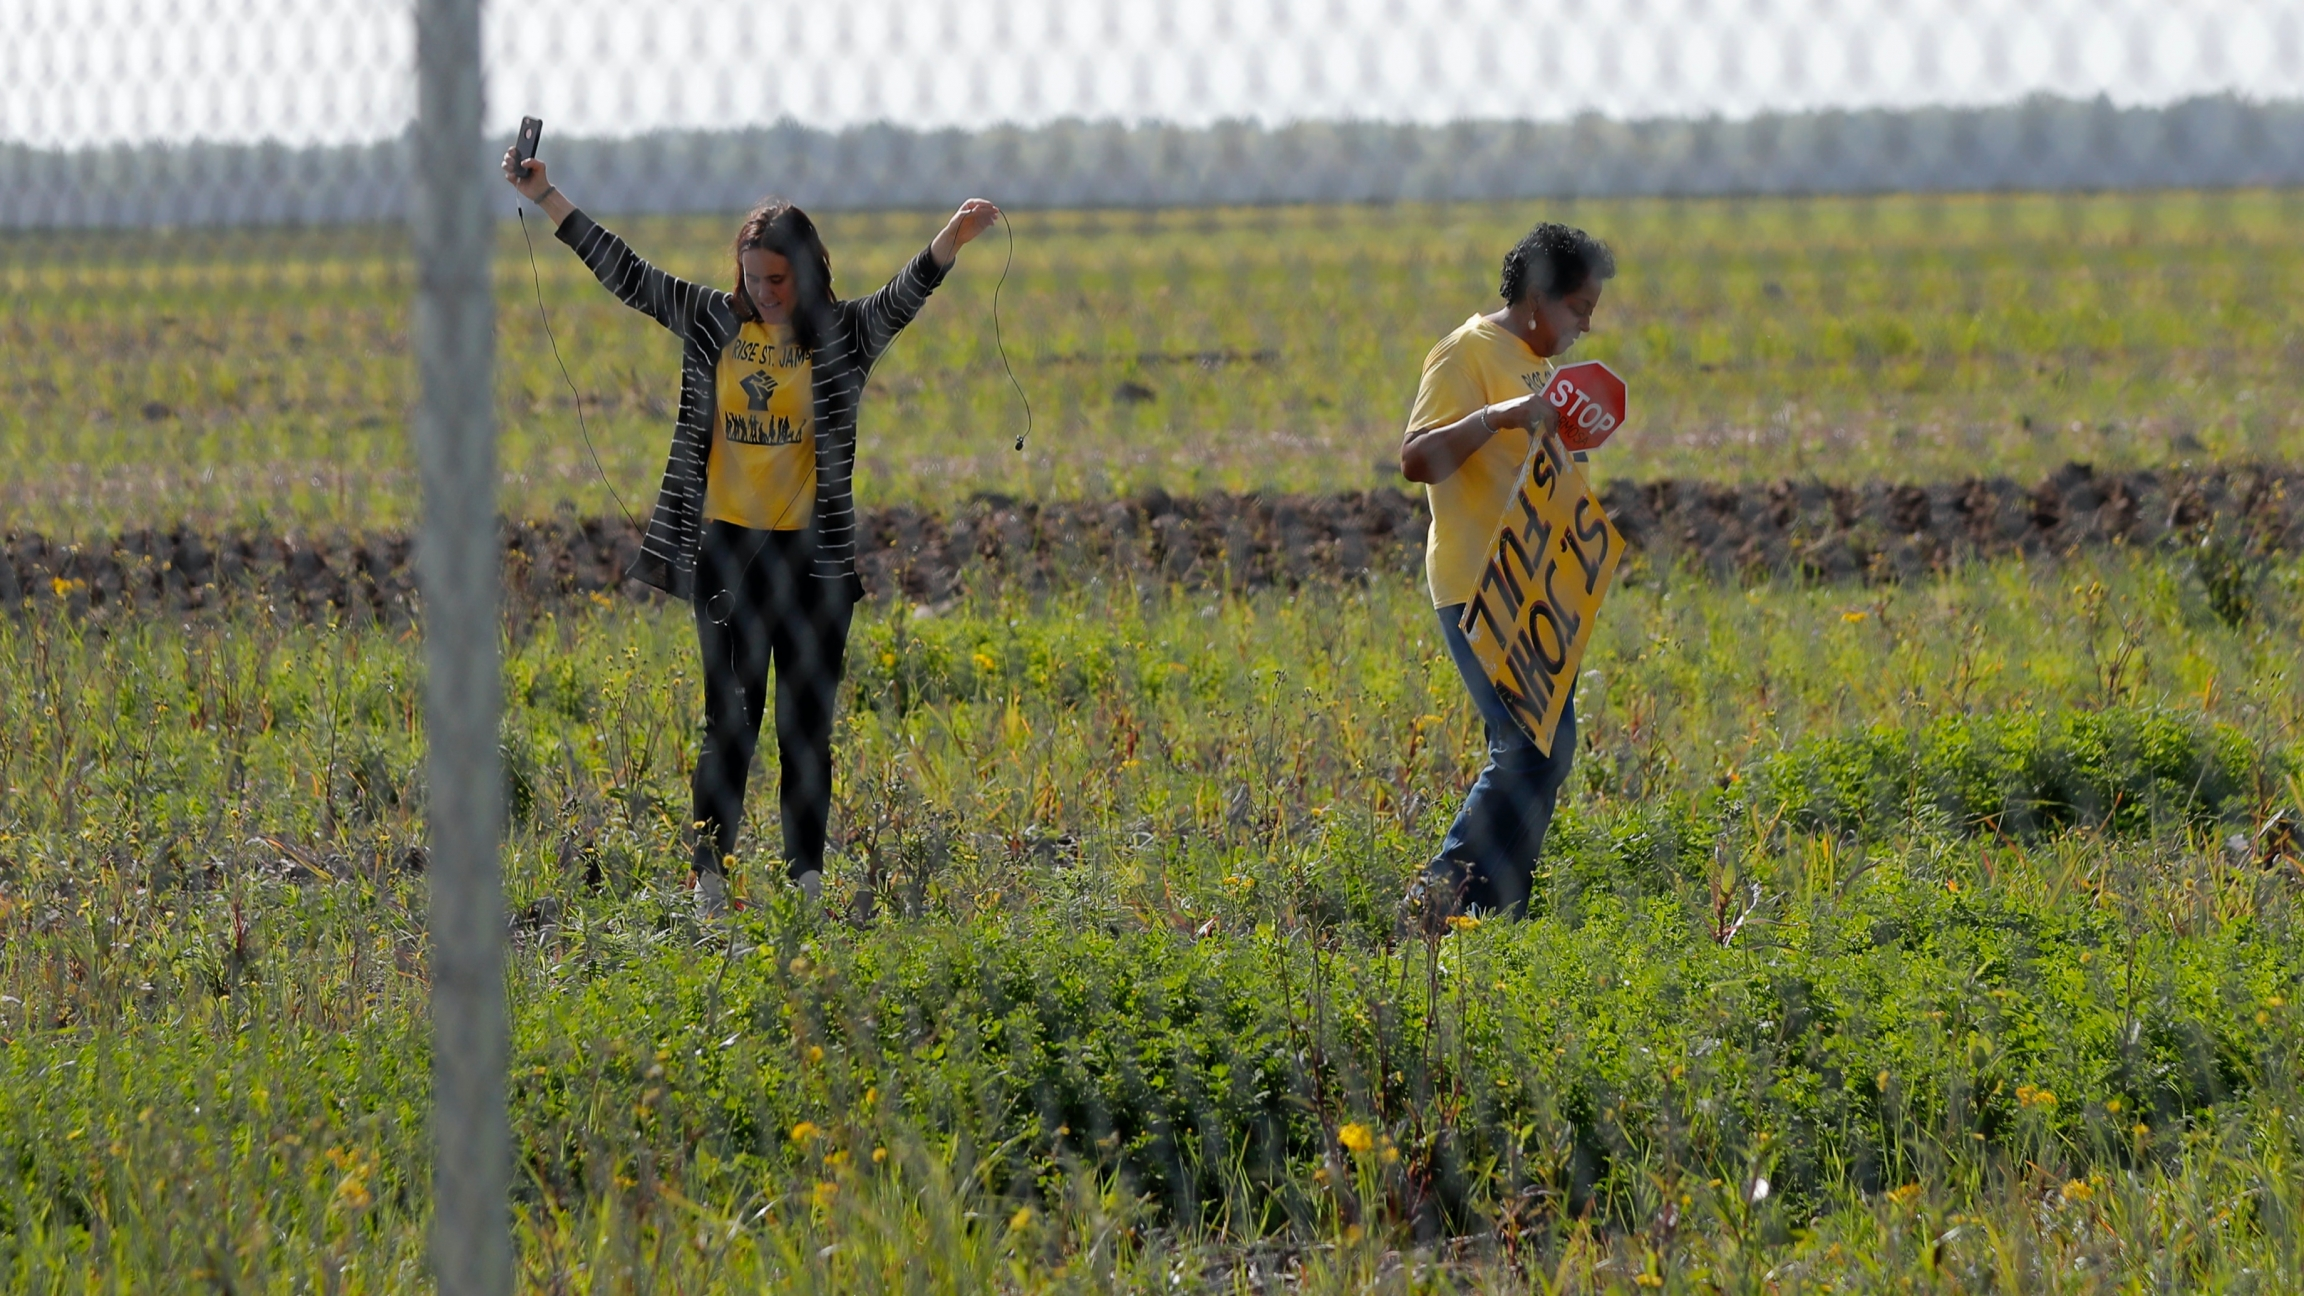 Two Black American women wearing yellow activist shirts stand in a field behind a fence